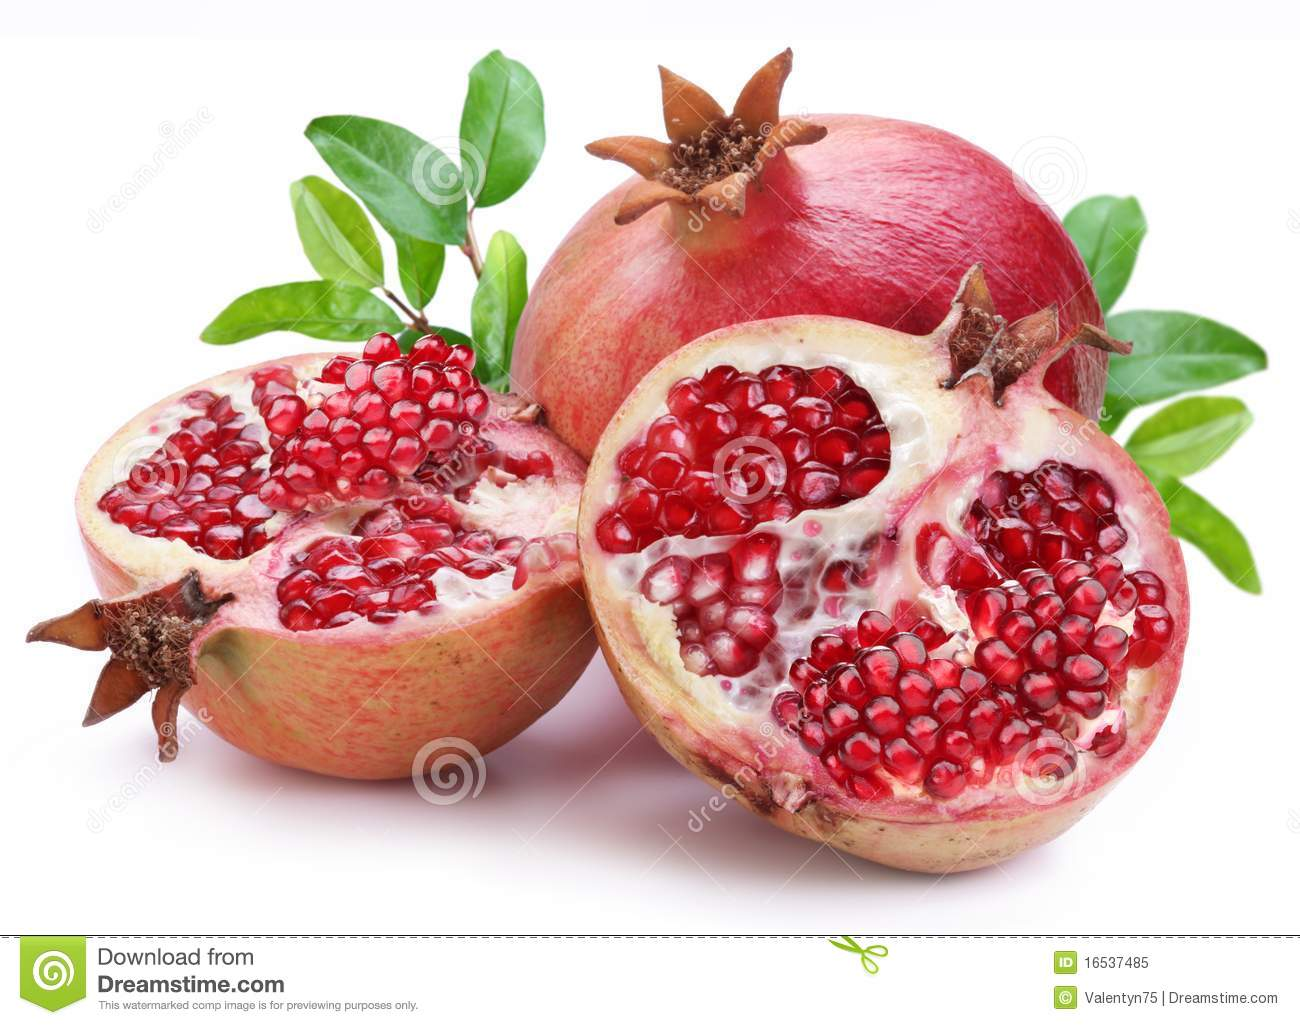 Juicy opened pomegranate with leaves.